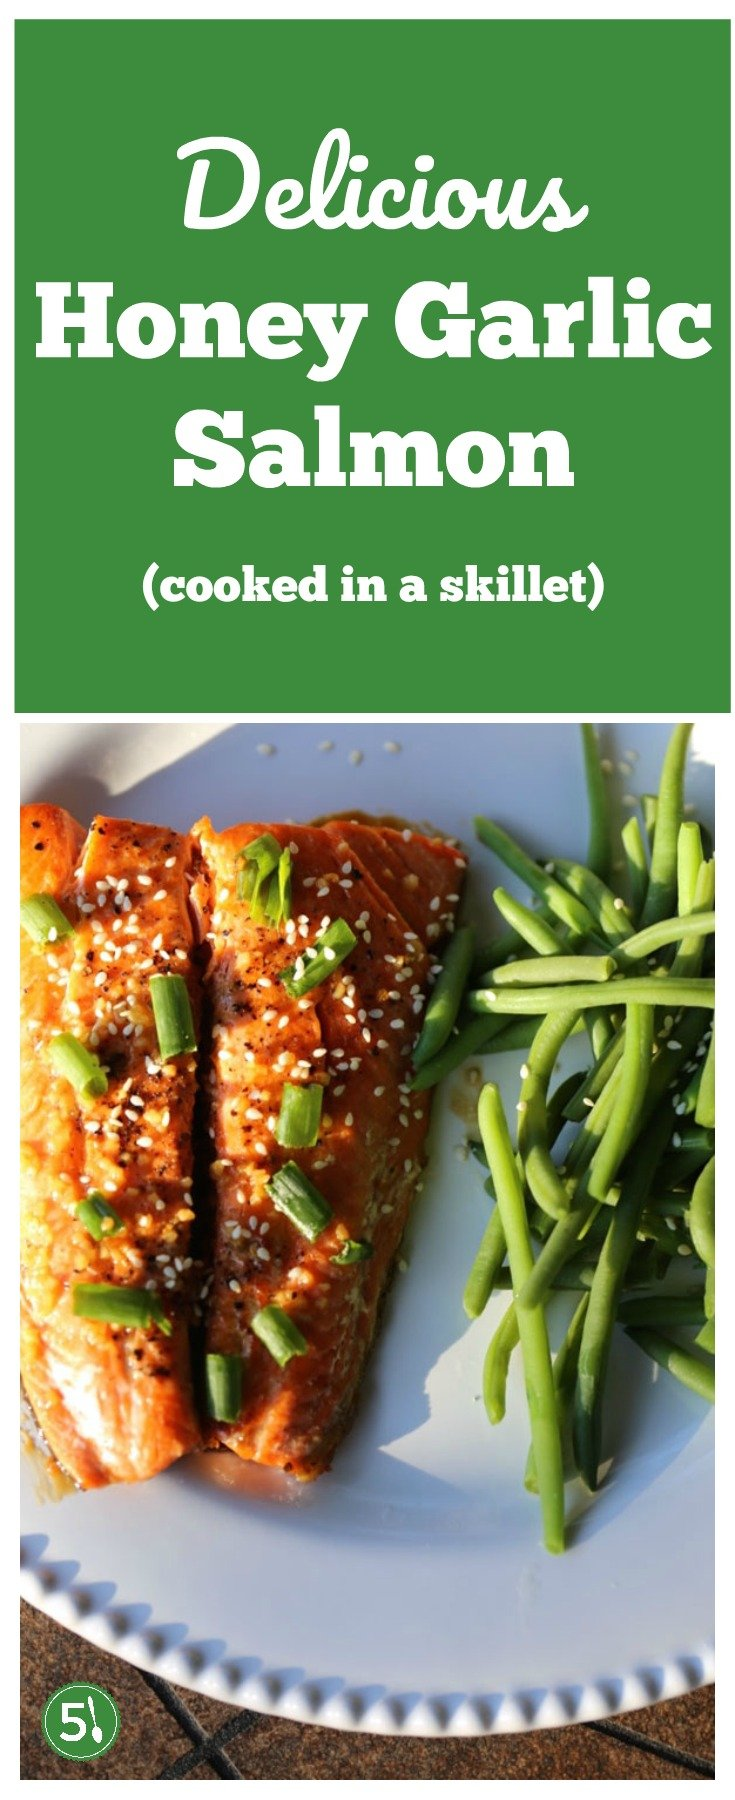 This is an easy and healthy skillet honey garlic salmon dish with the most delicious marinade. LOVE this recipe!